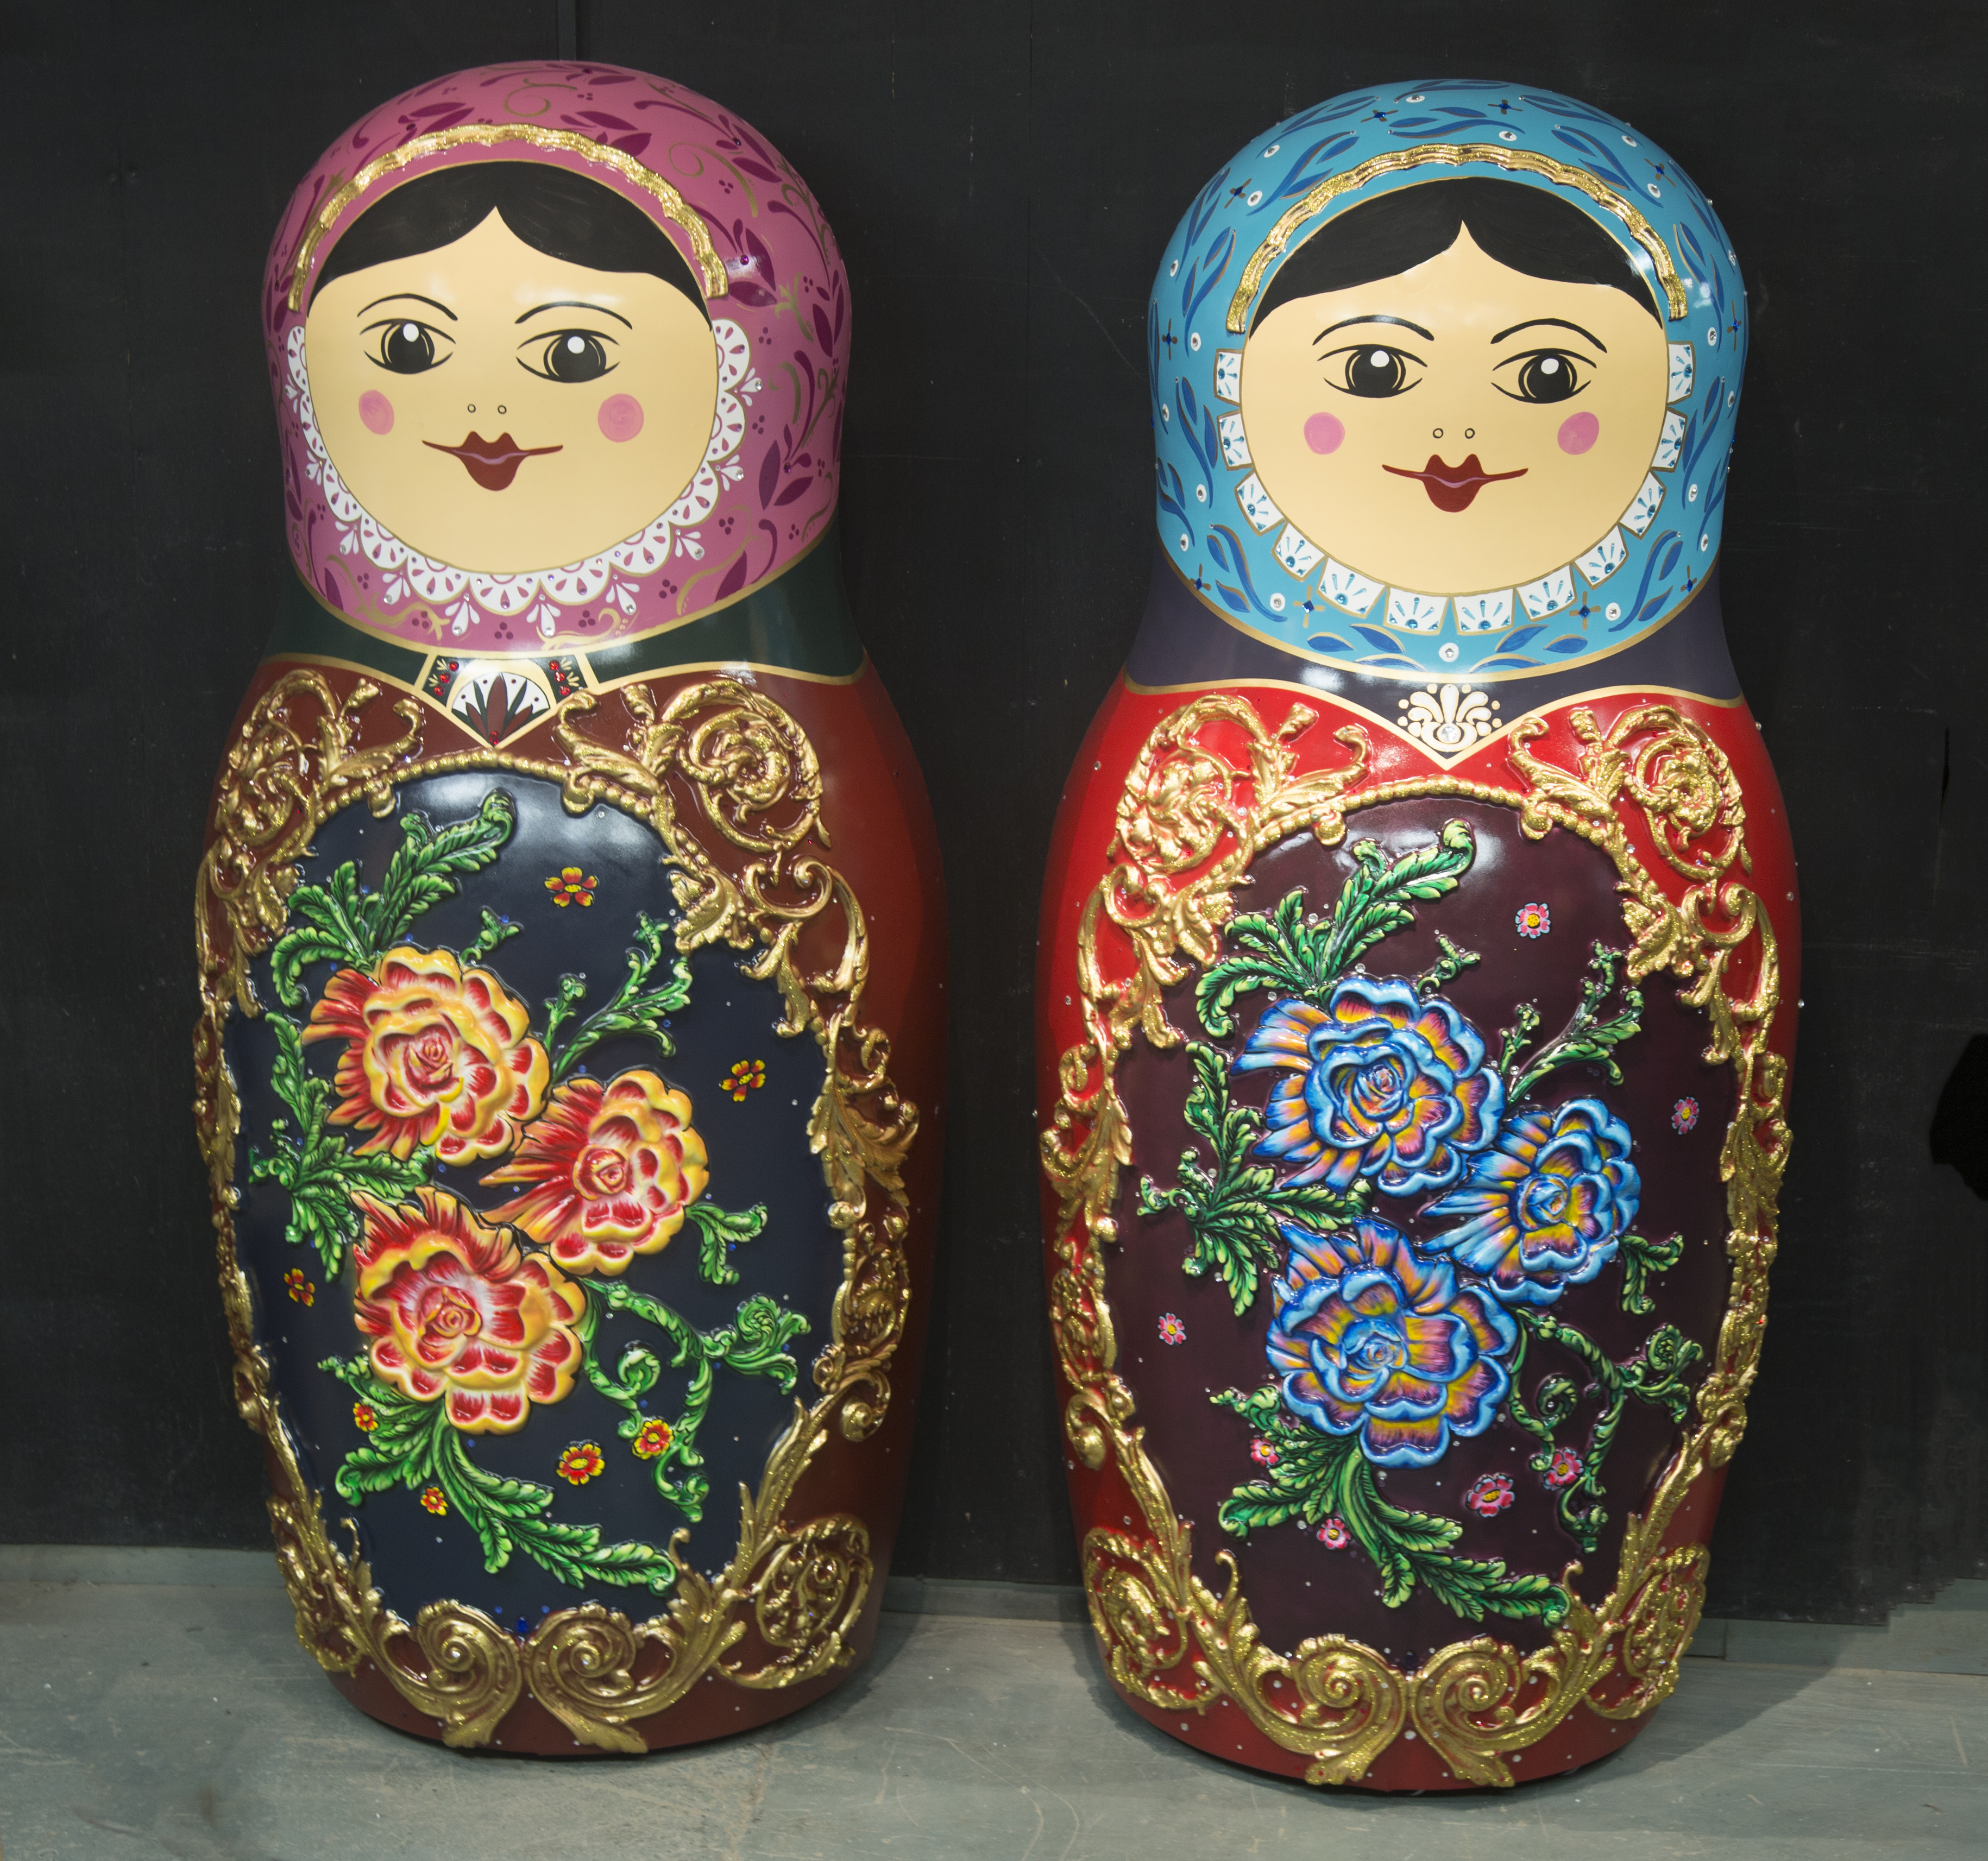 See these life-size Matryoshka Dolls in Moscow Ballet's Great Russian Nutcracker